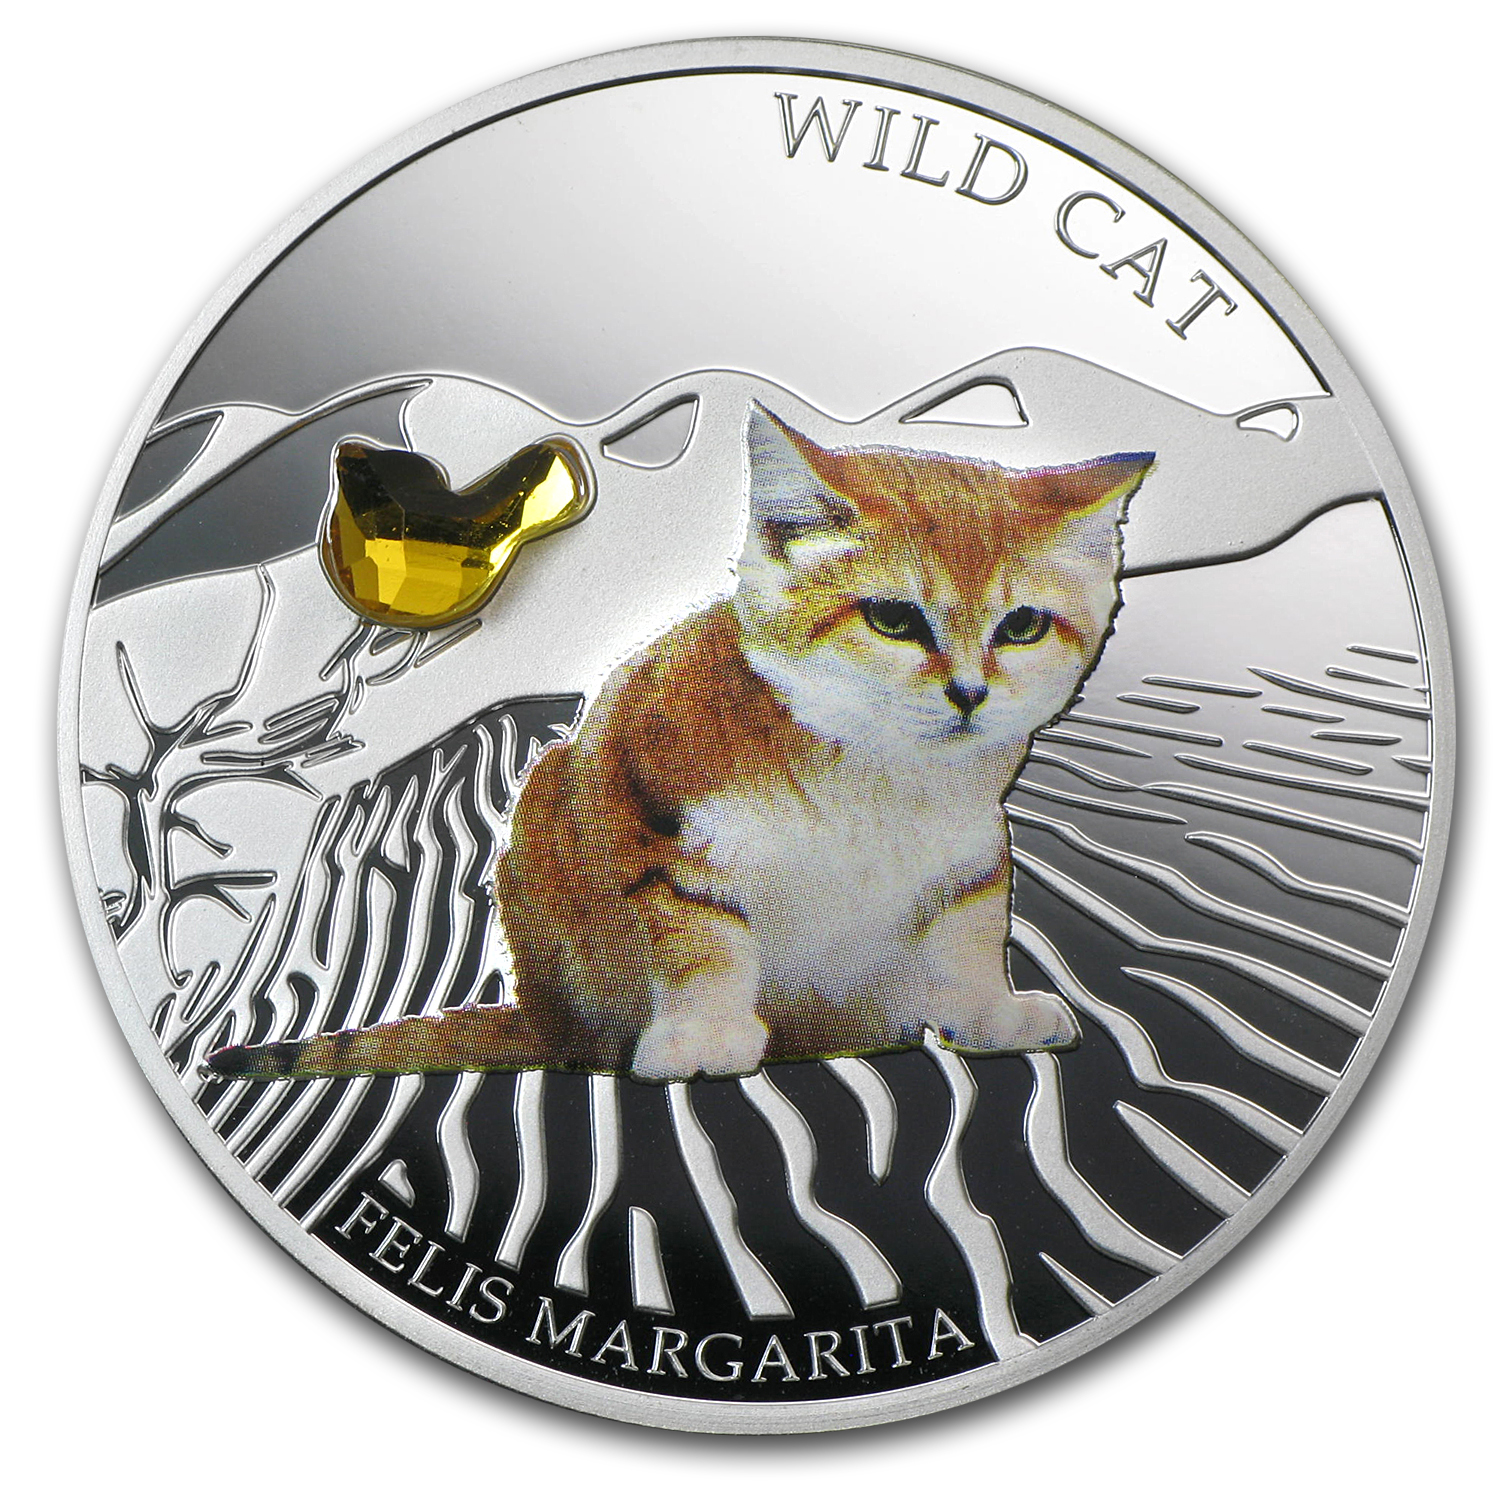 2013 Fiji Silver Dogs & Cats Series Wild Cat Felis Margarita